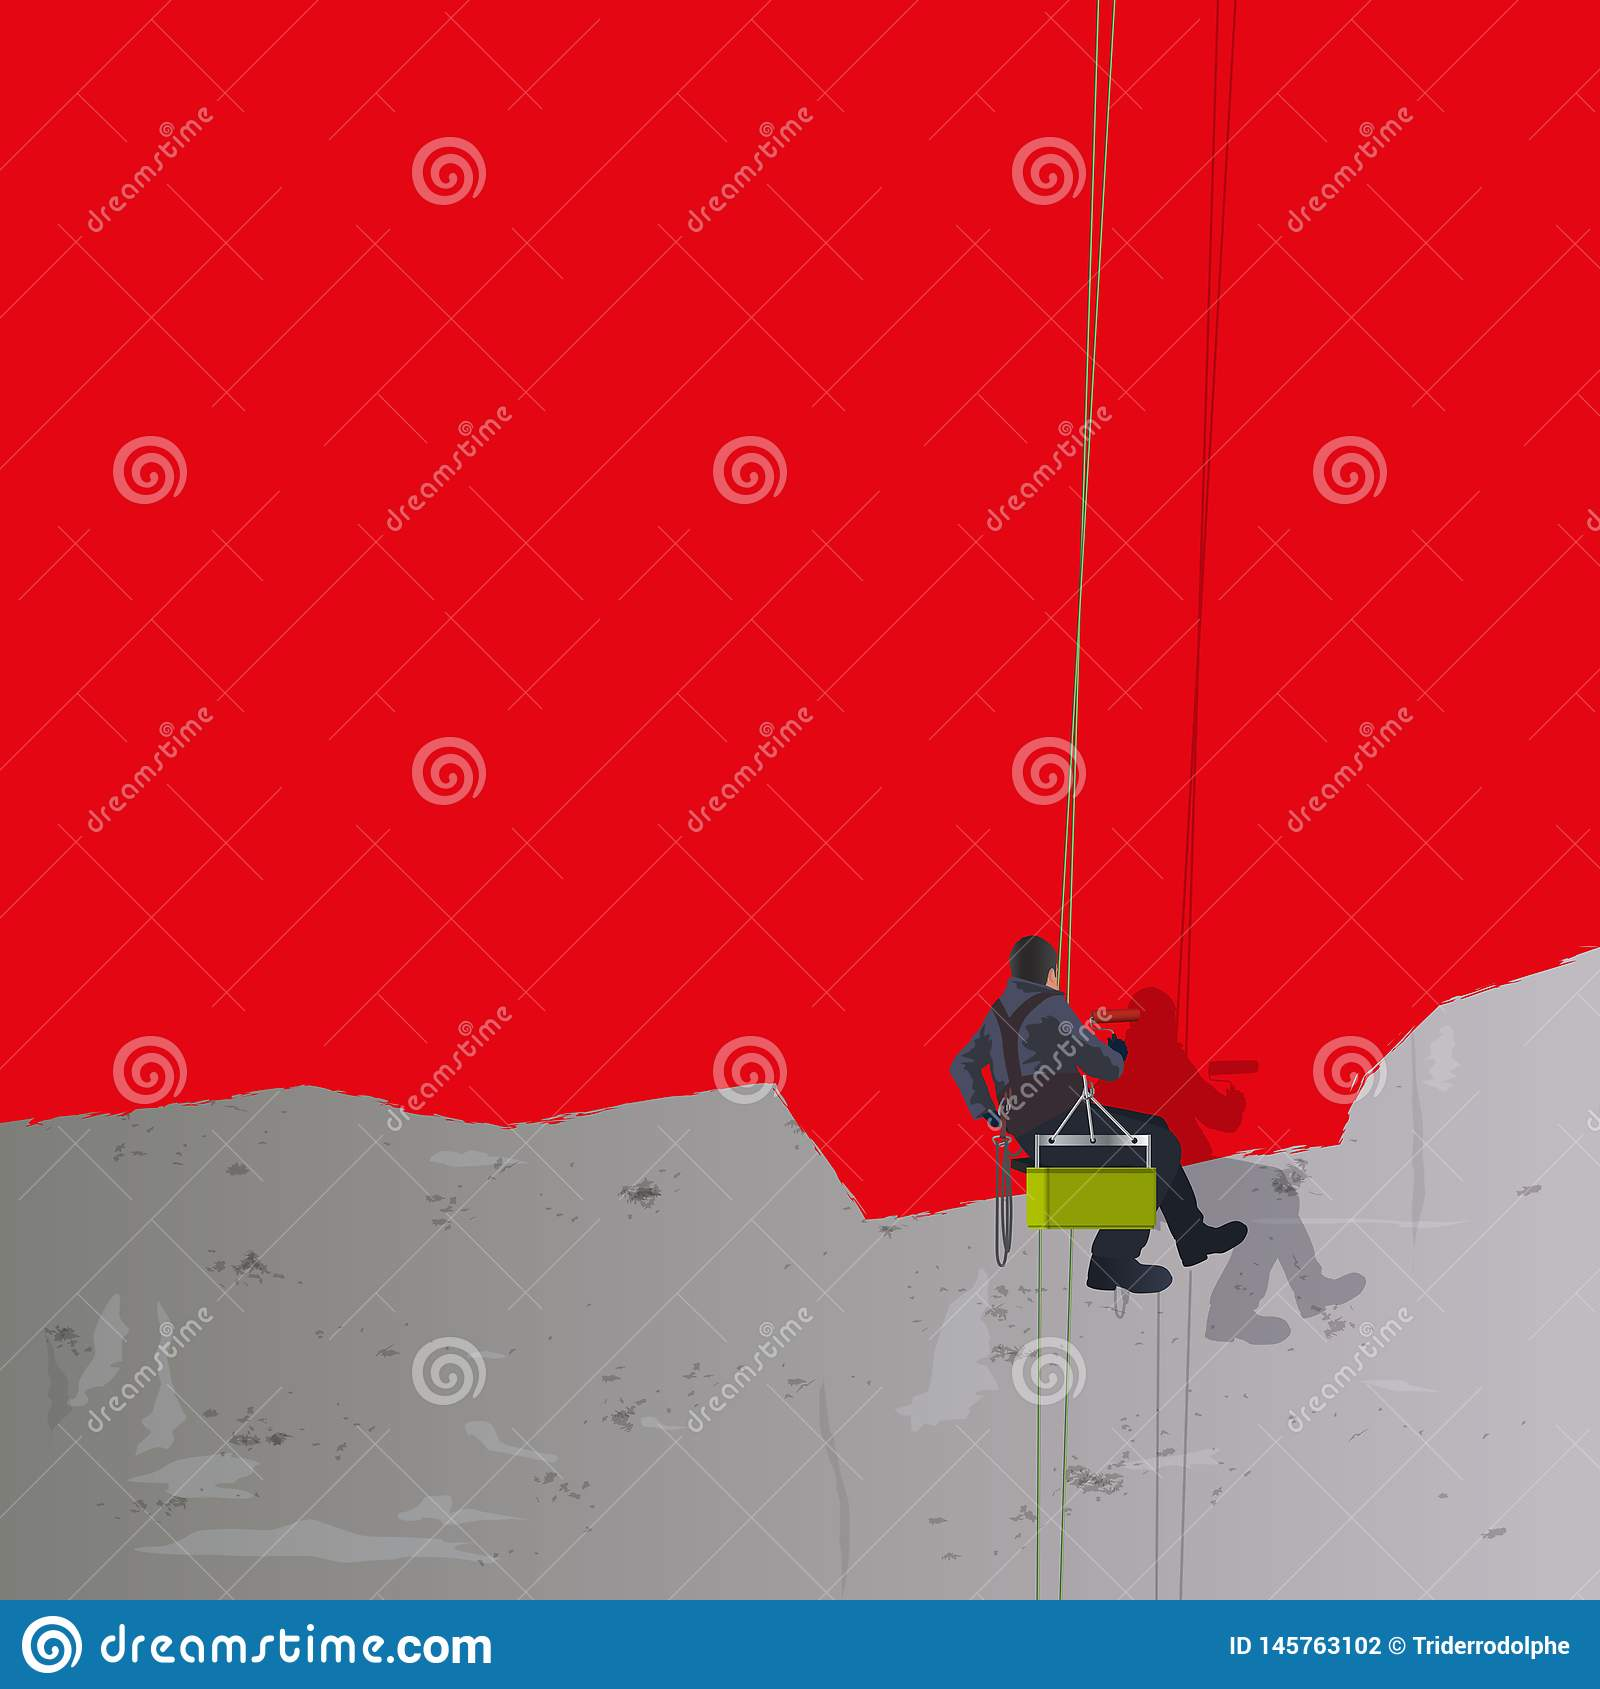 Red background with a house painter repainting a concrete wall.